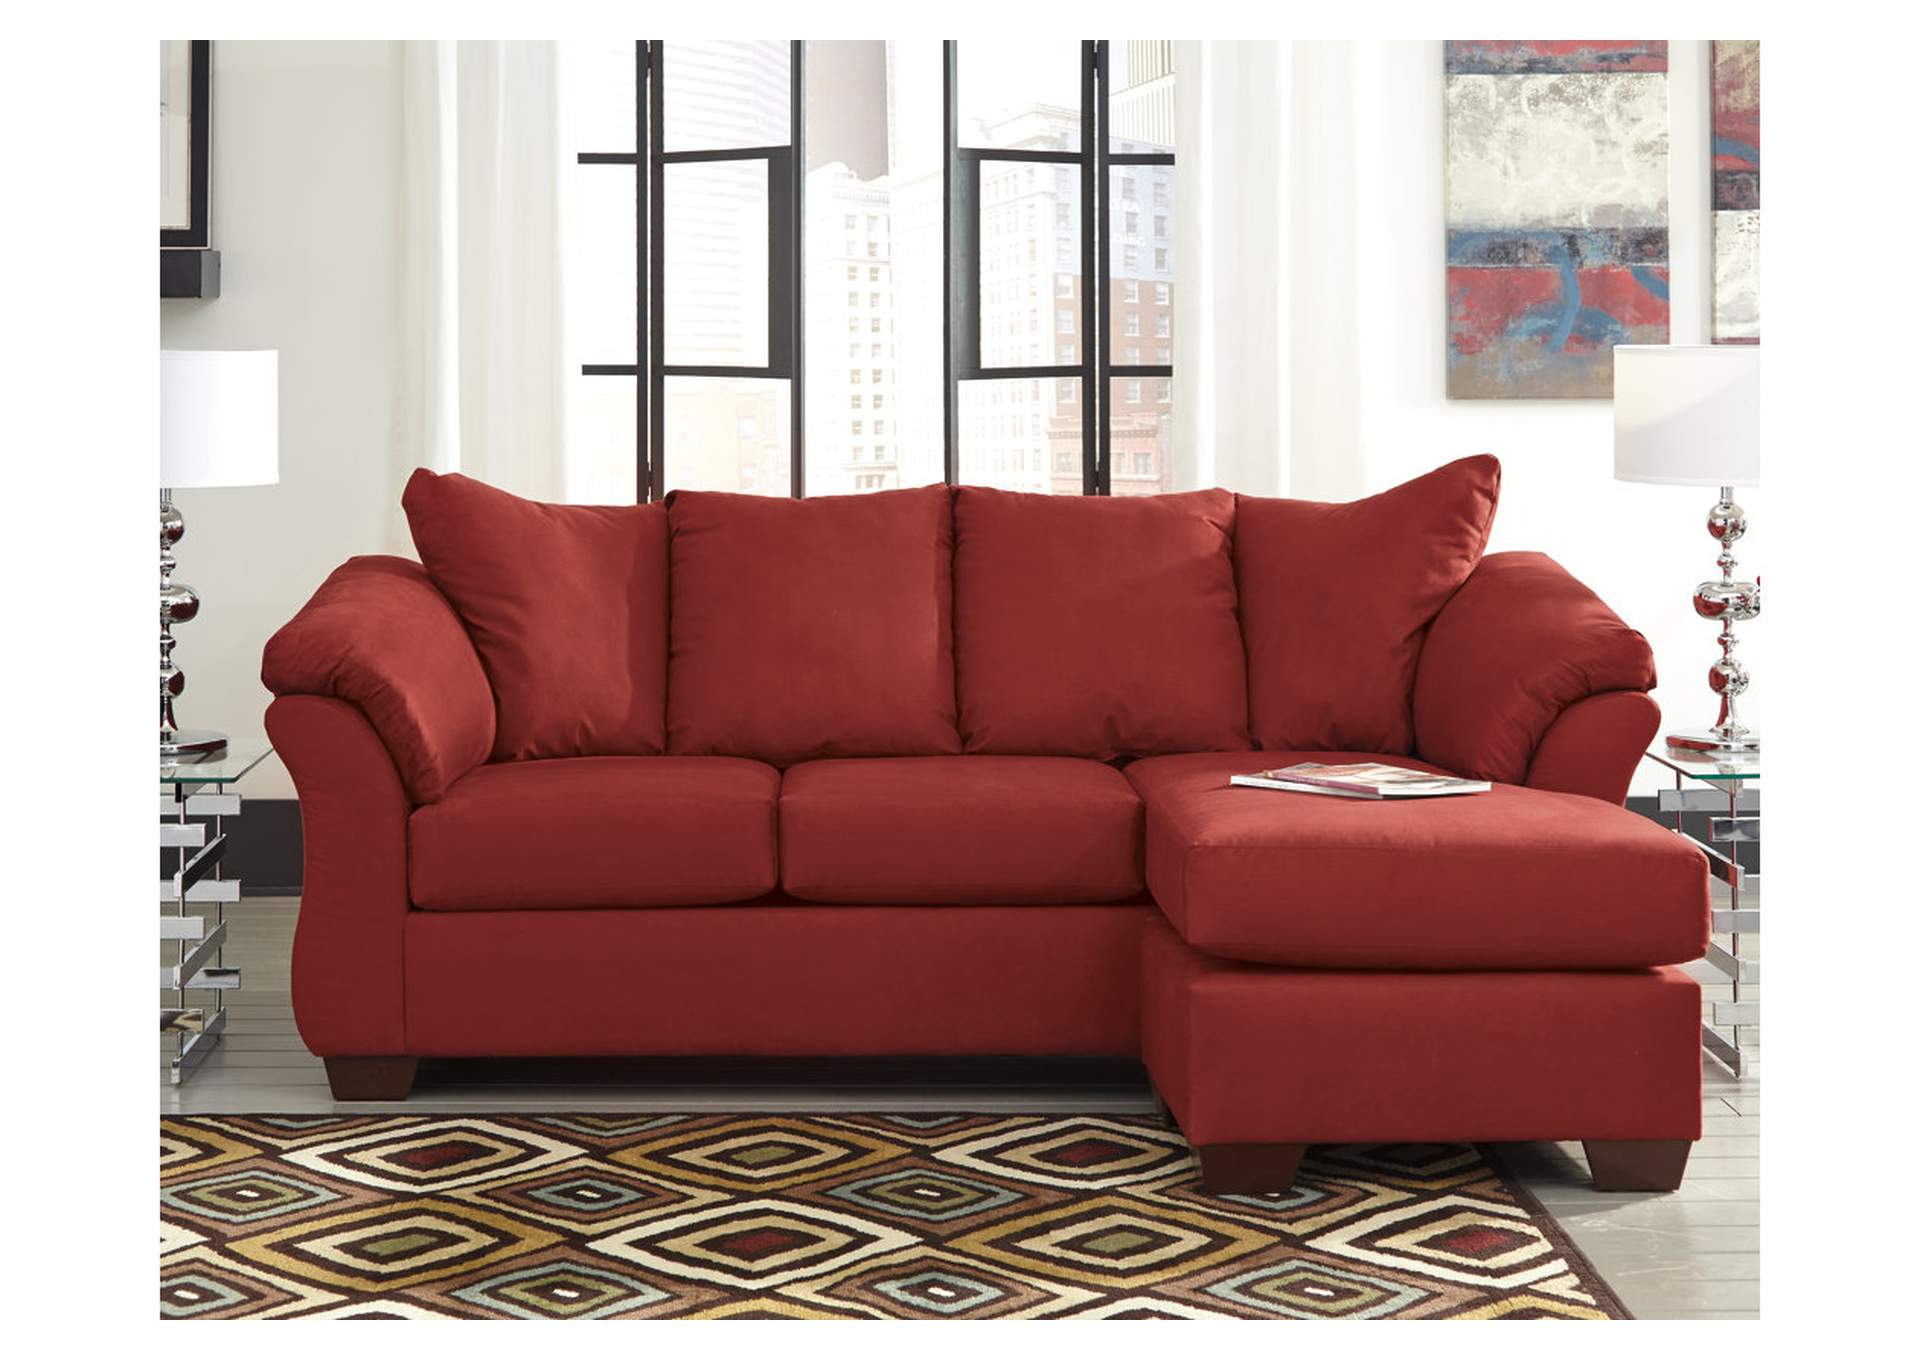 Darcy Salsa Sofa Chaise,Signature Design By Ashley